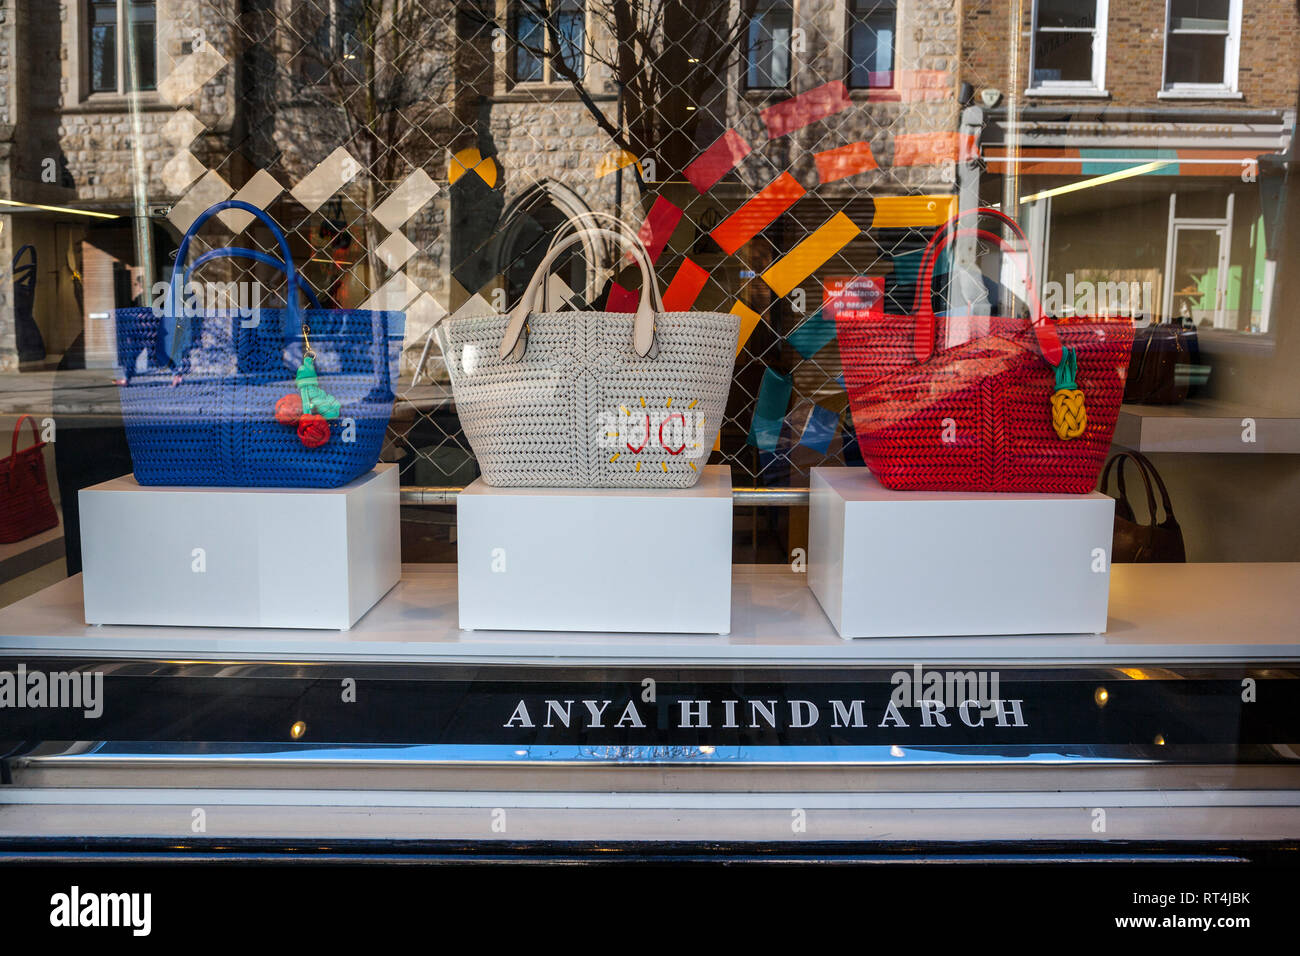 Anya Hindmarch, leather goods store, Notting Hill London - Stock Image